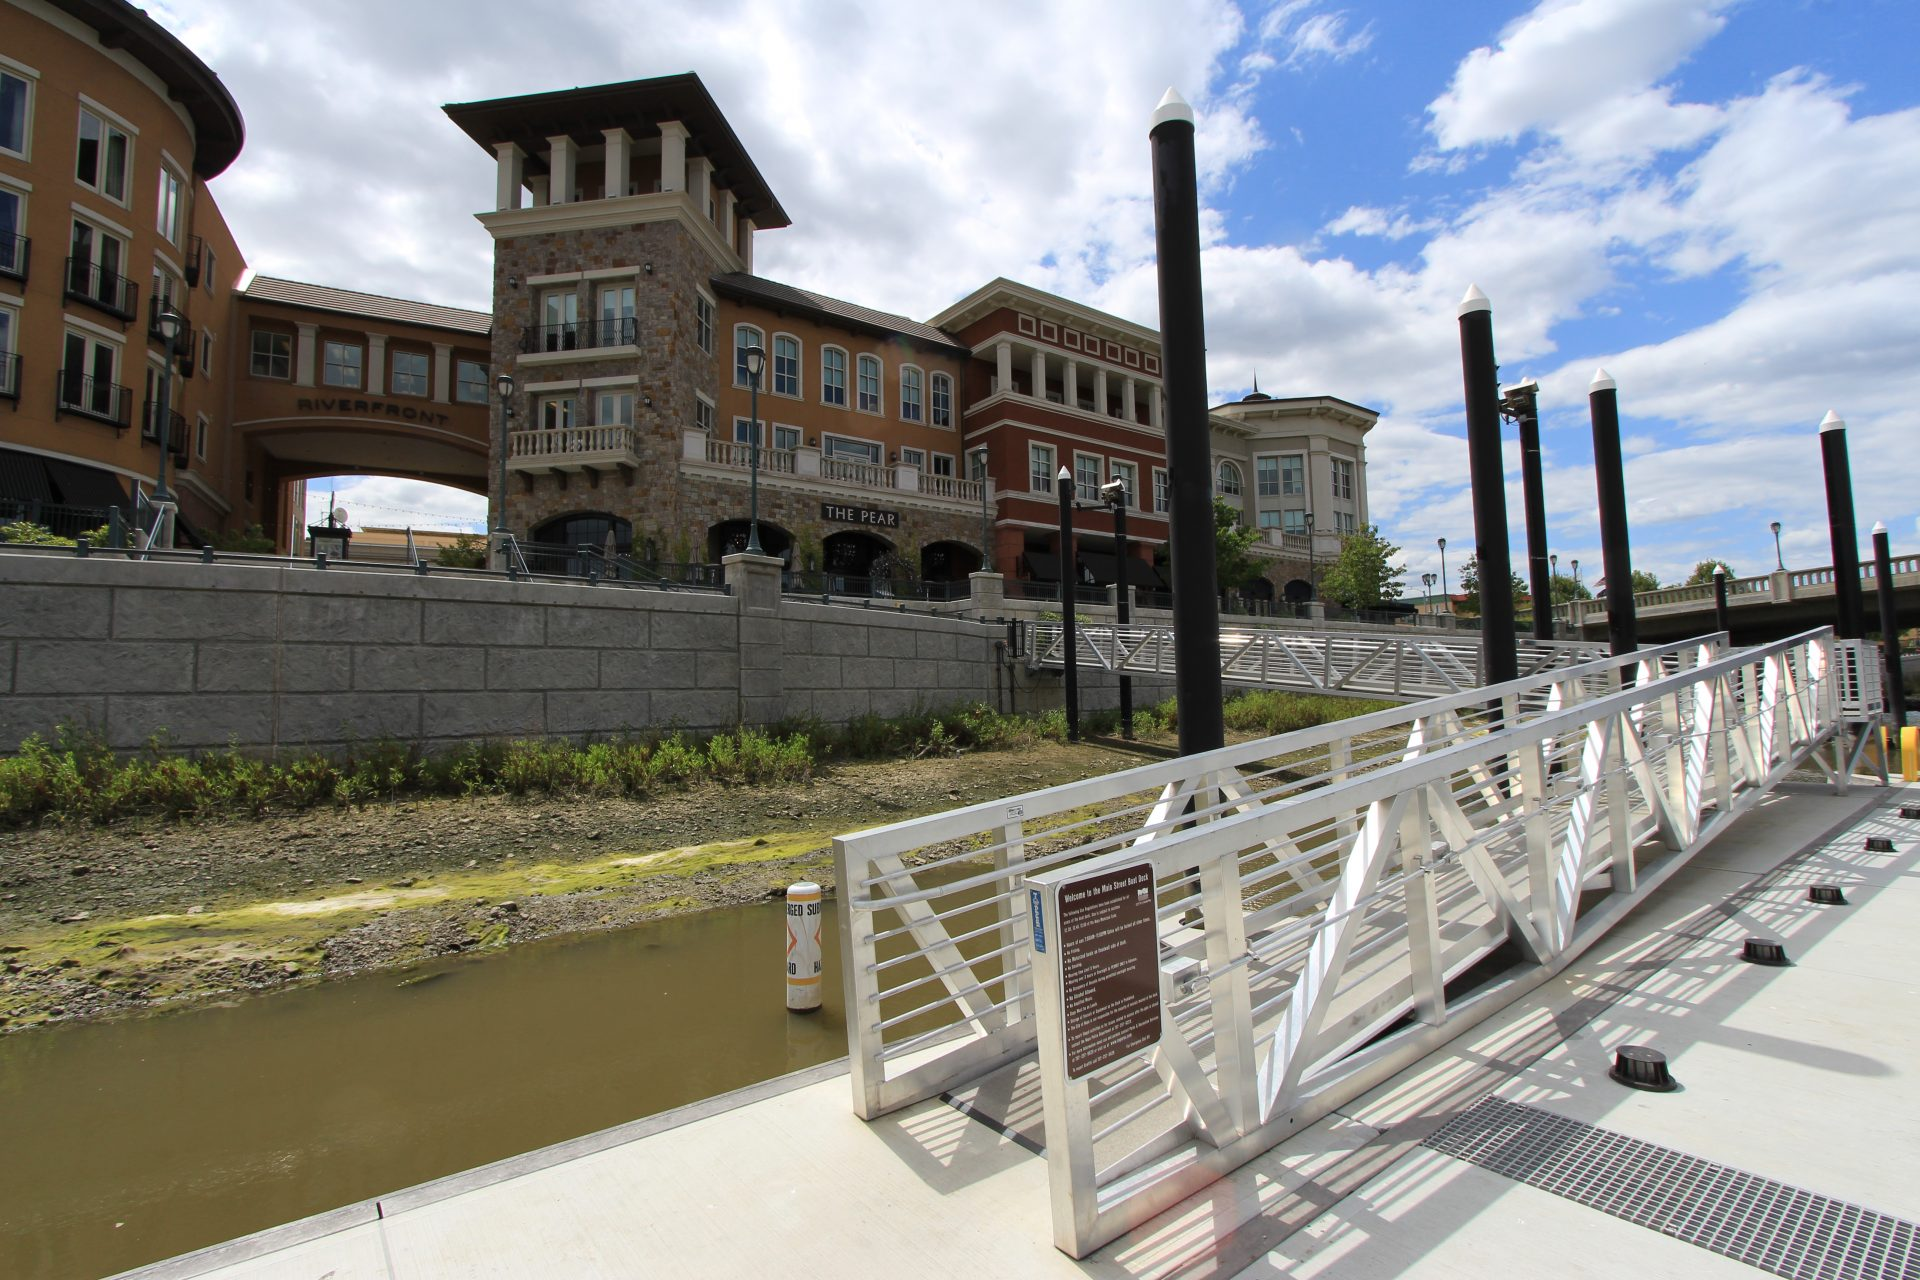 View of ramp to shore, retaining wall, riverfront buildings